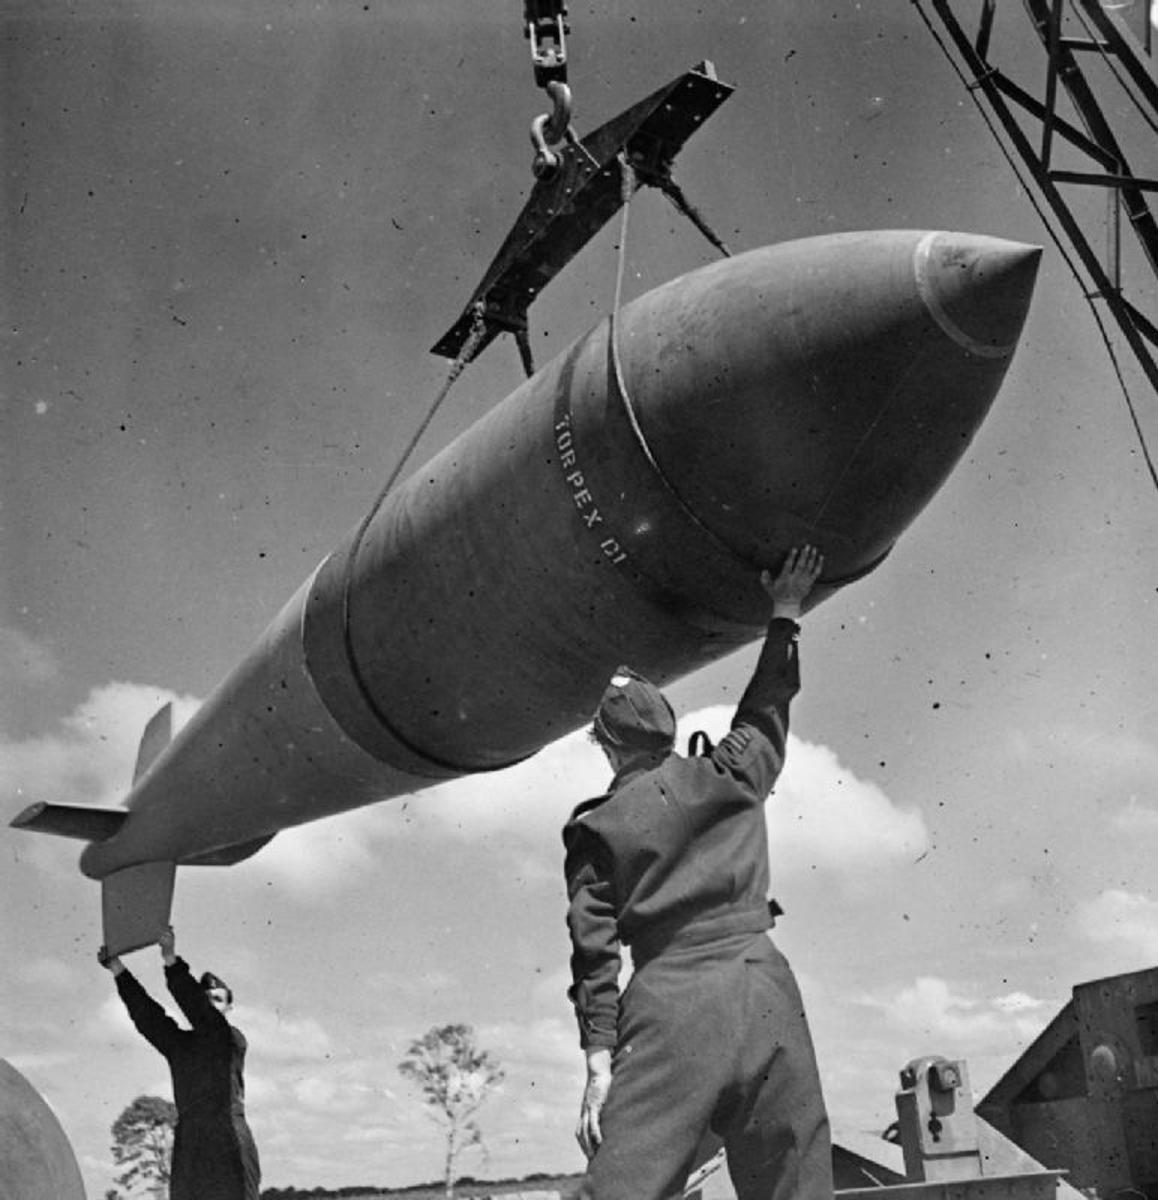 Royal Air Force Bomber Command, 1942-1945. A 12,000-lb MC deep-penetration bomb (Bomber Command executive codeword 'Tallboy') is hoisted from the bomb dump to its carrier at Woodhall Spa, Lincolnshire, to be loaded into an Avro Lancaster of No. 617 Squadron RAF for a raid on the V-weapon site at Wizernes, France. 617 Squadron were unable to bomb the target on this occasion because of low cloud cover, but were to succeed two days later.